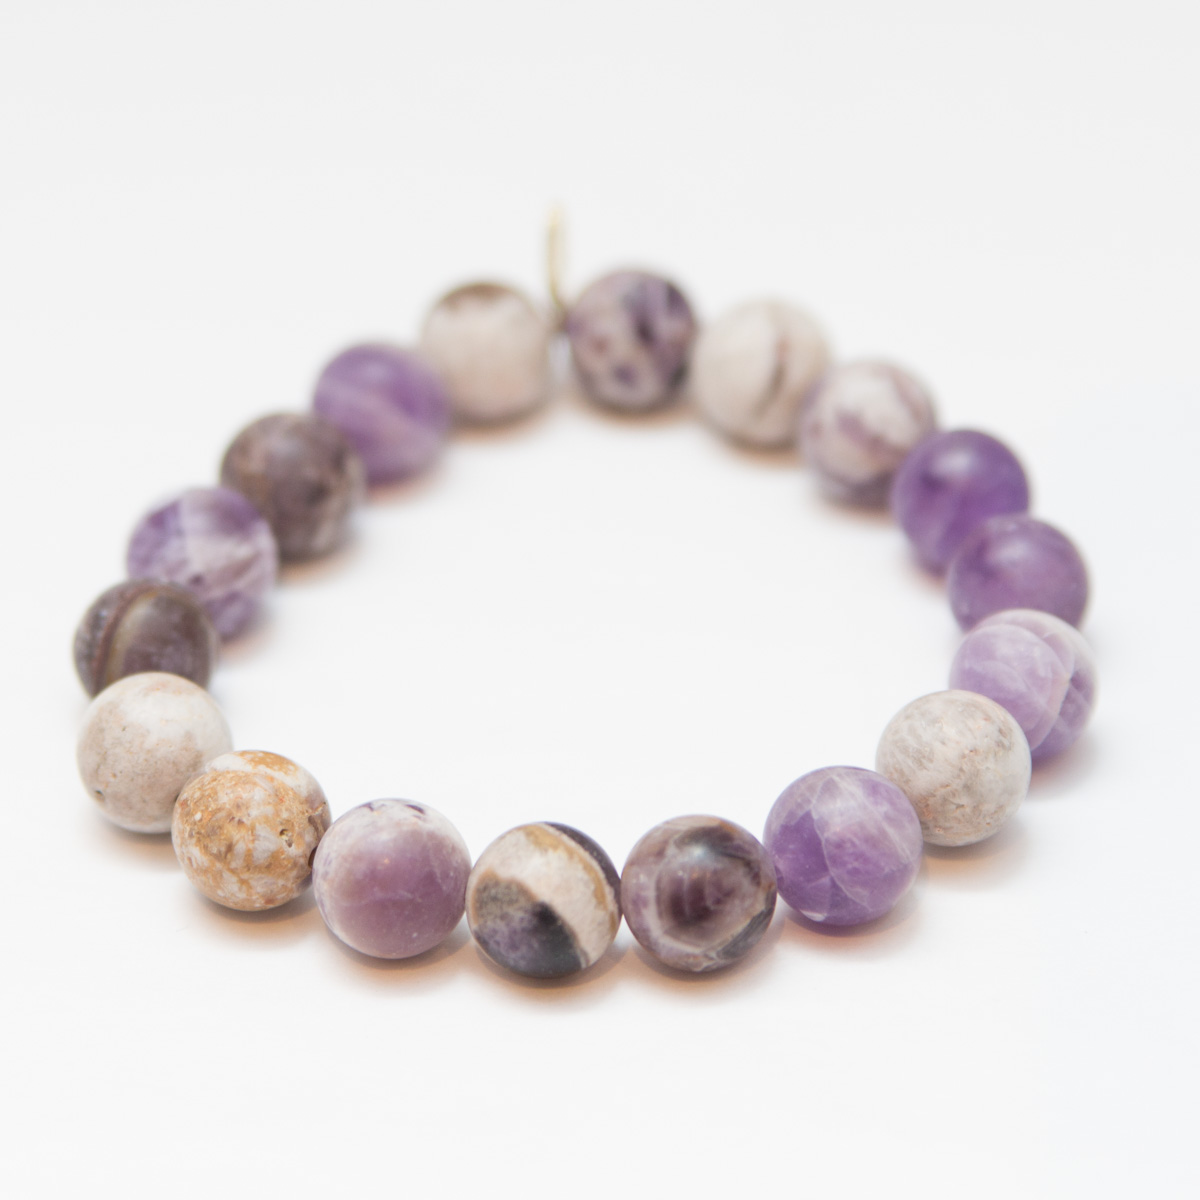 Amethyst - This stone happens to be the one that acts as a natural tranquilizer. It has the ability to strengthen your imagination and intuition which allows your thinking processes to be refined. Because of that any negative energy that you're exposed to instead turns into relief and joy. So perfect for when you're travelling and exposed to so many other people and their energy.